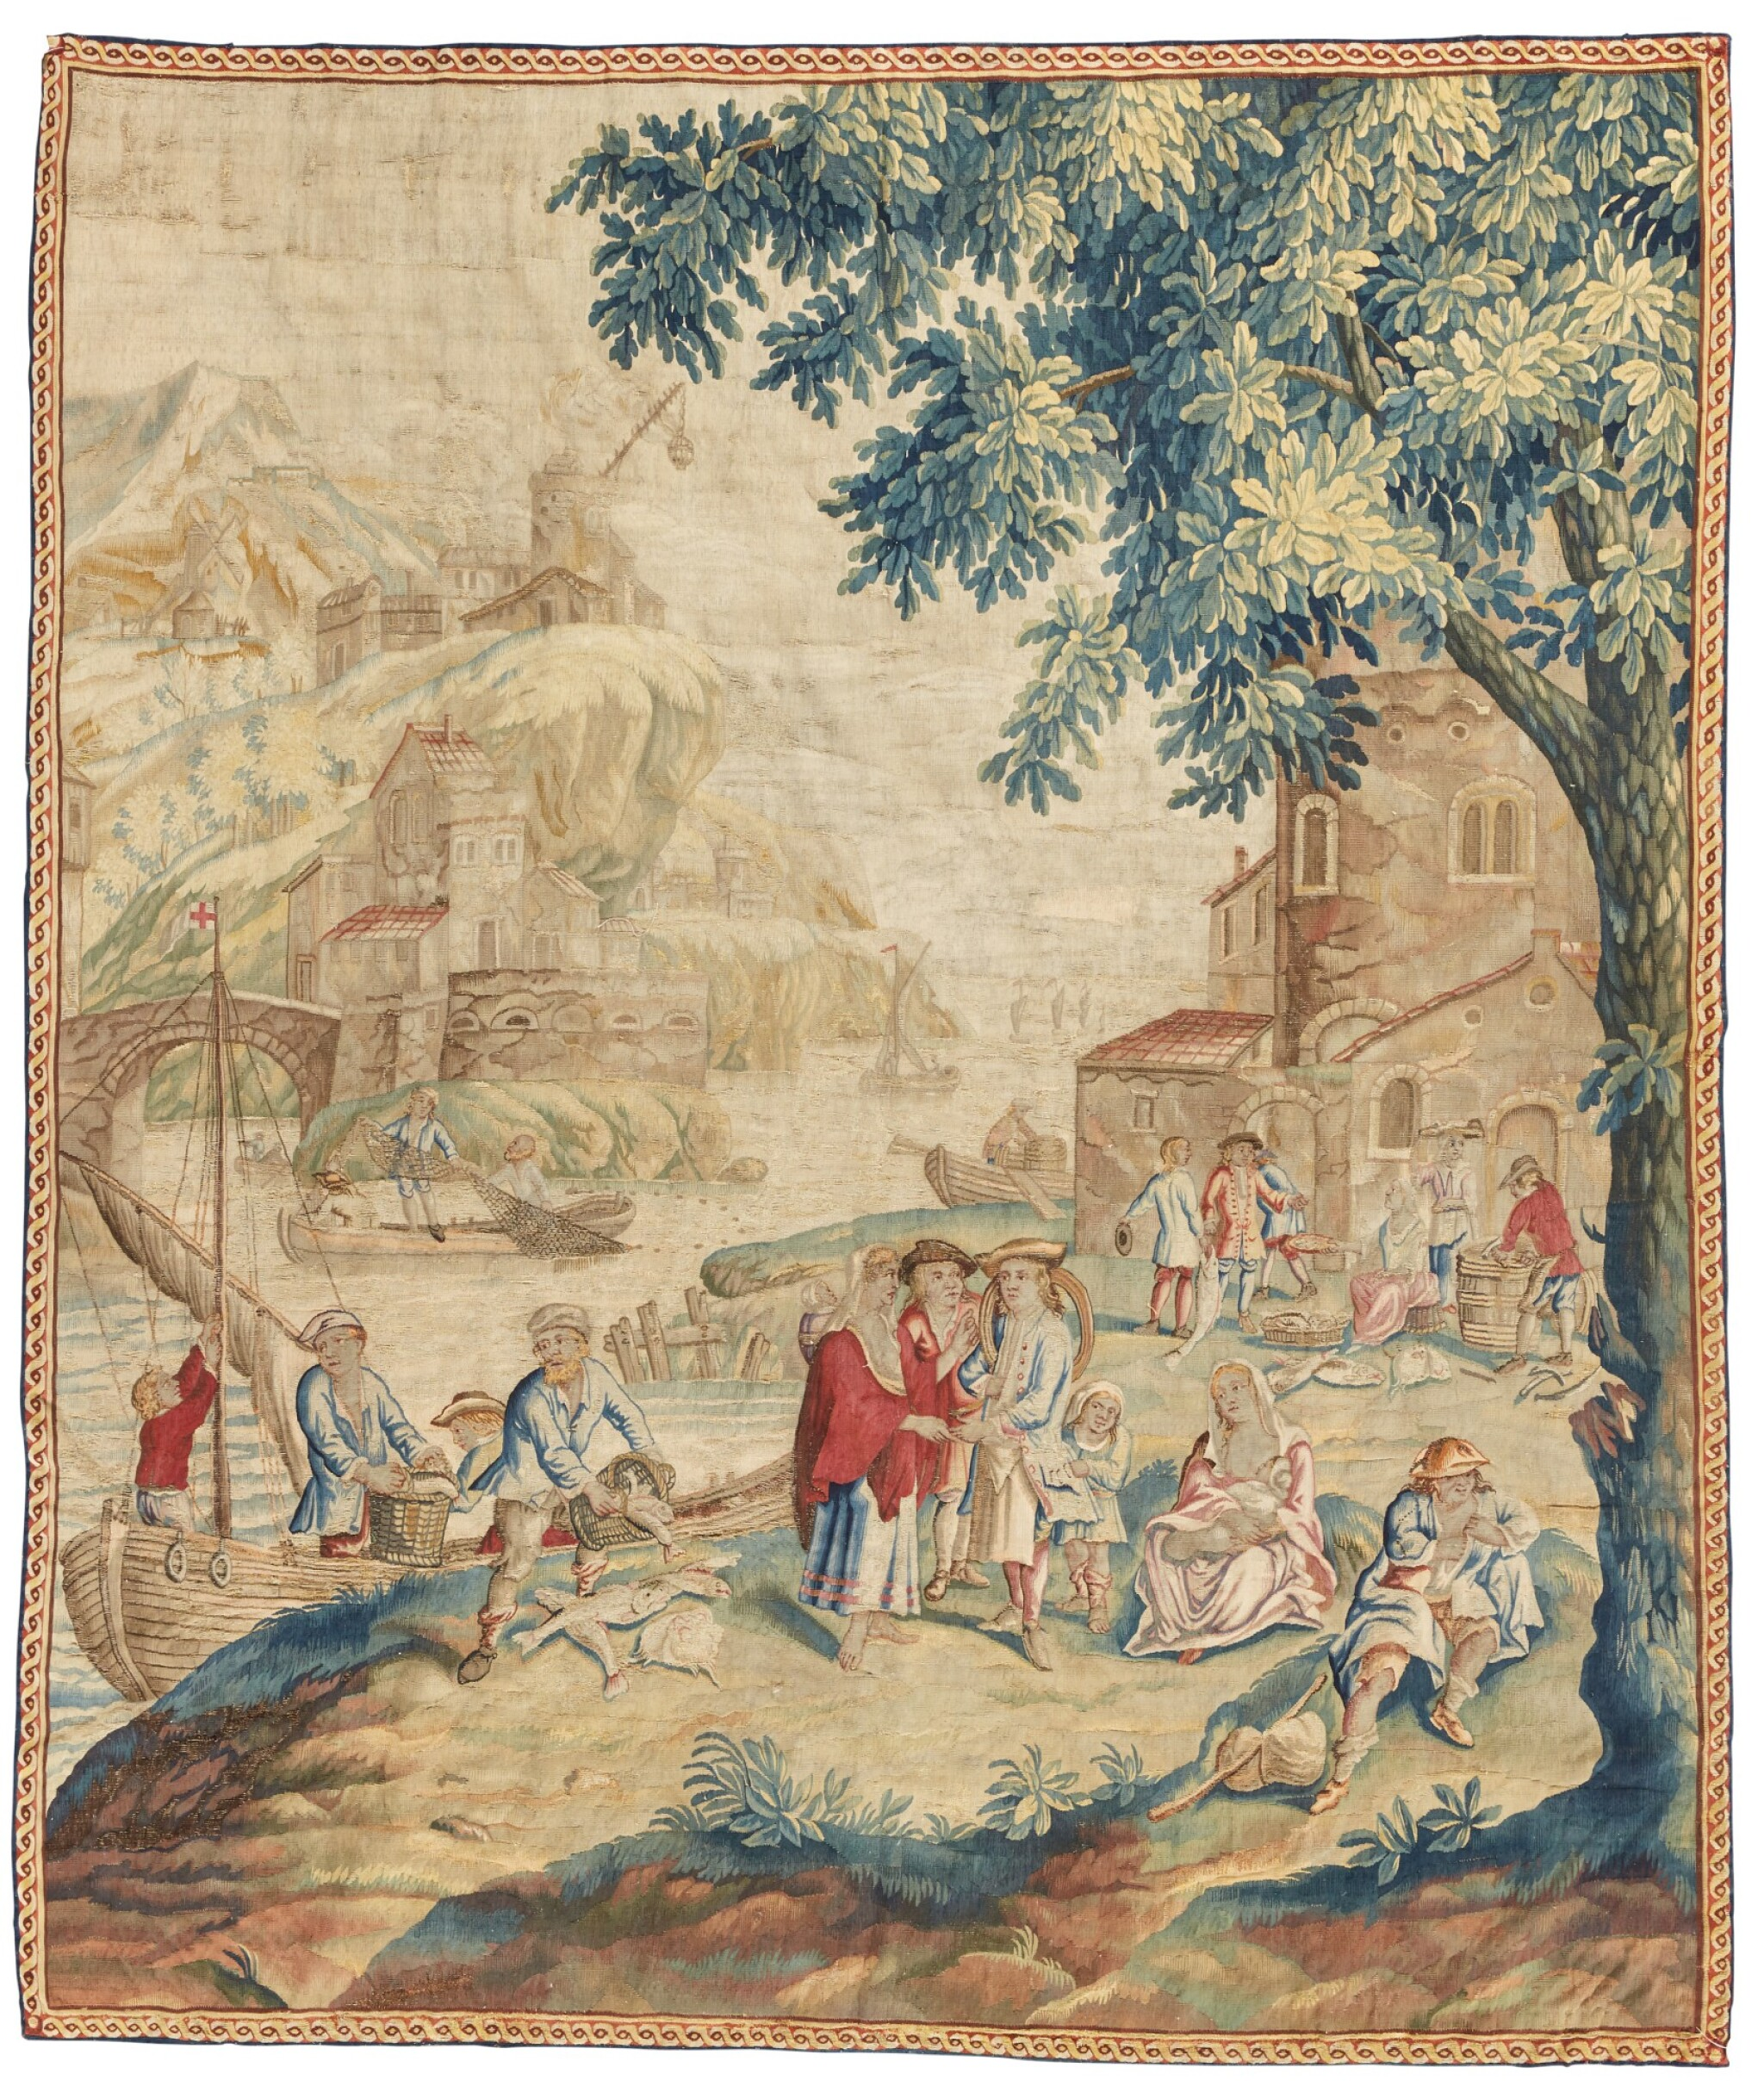 View full screen - View 1 of Lot 75. 'Fishing Harbour', An English Genre Tapestry, London, possibly Chabaneix workshop, 18th century.